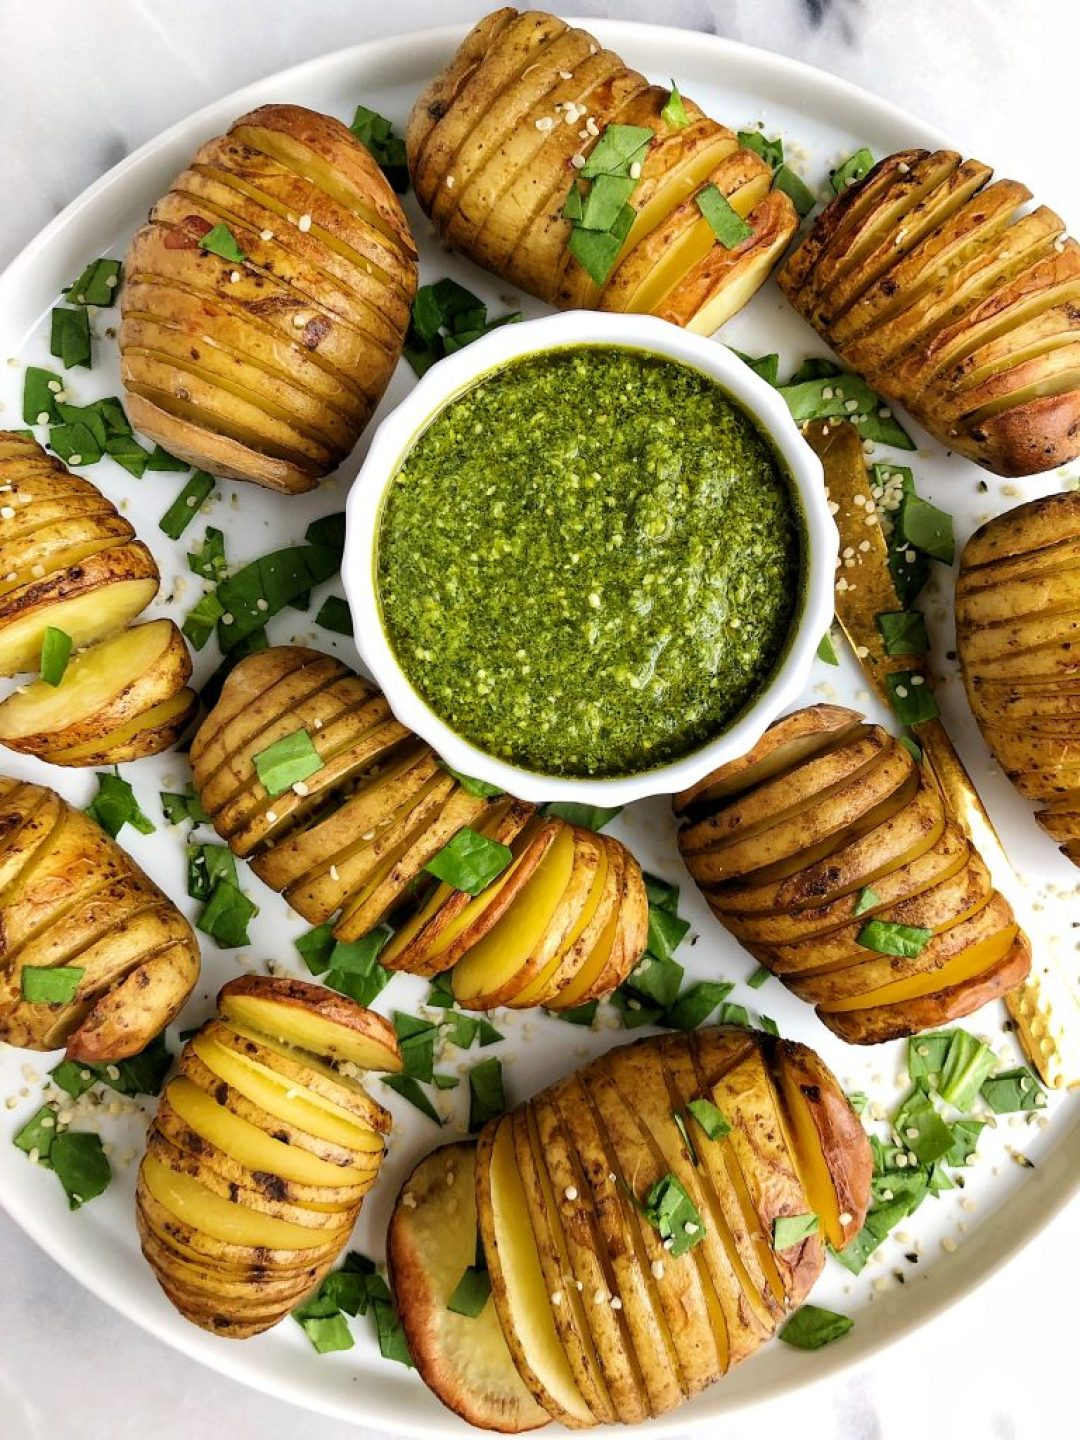 Sharing these Whole30 Hasselback Potatoes with Garlicky Basil Pesto. Extra crispy potatoes paired with the dreamiest dairy-free pesto. A delicious vegan Whole30 recipe!